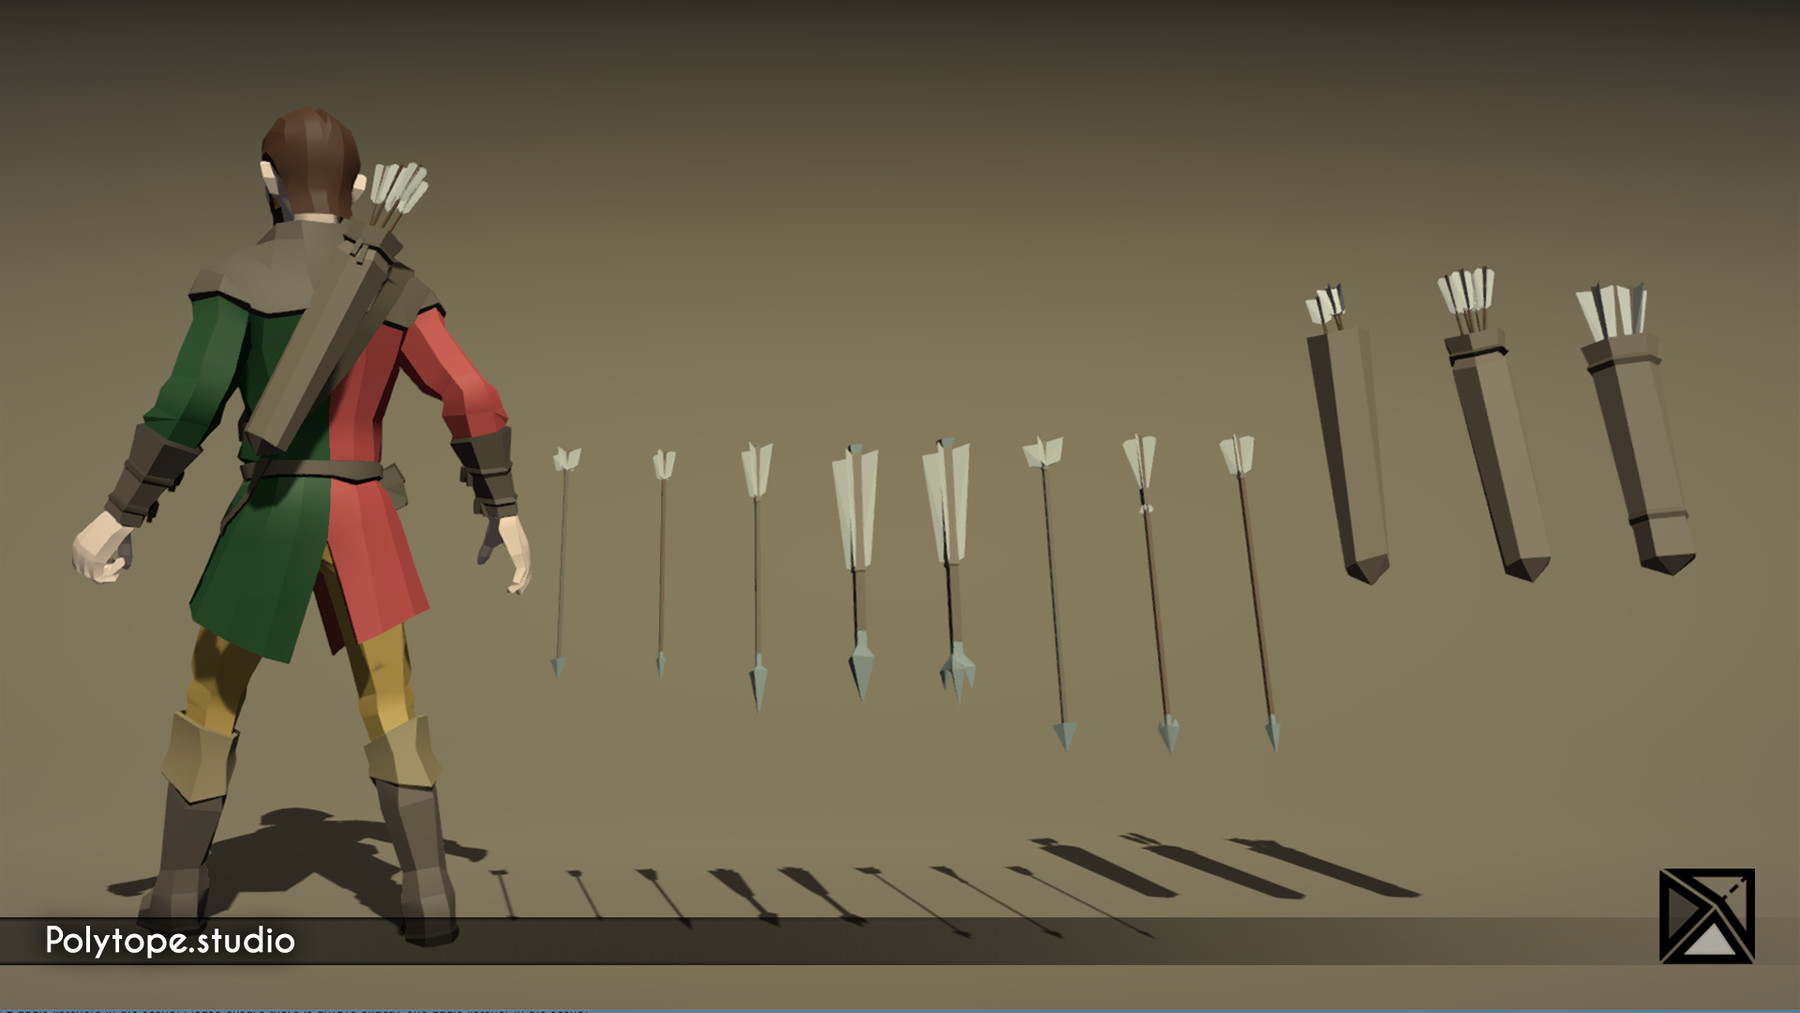 Pt medieval lowpoly weapons arrow quiver